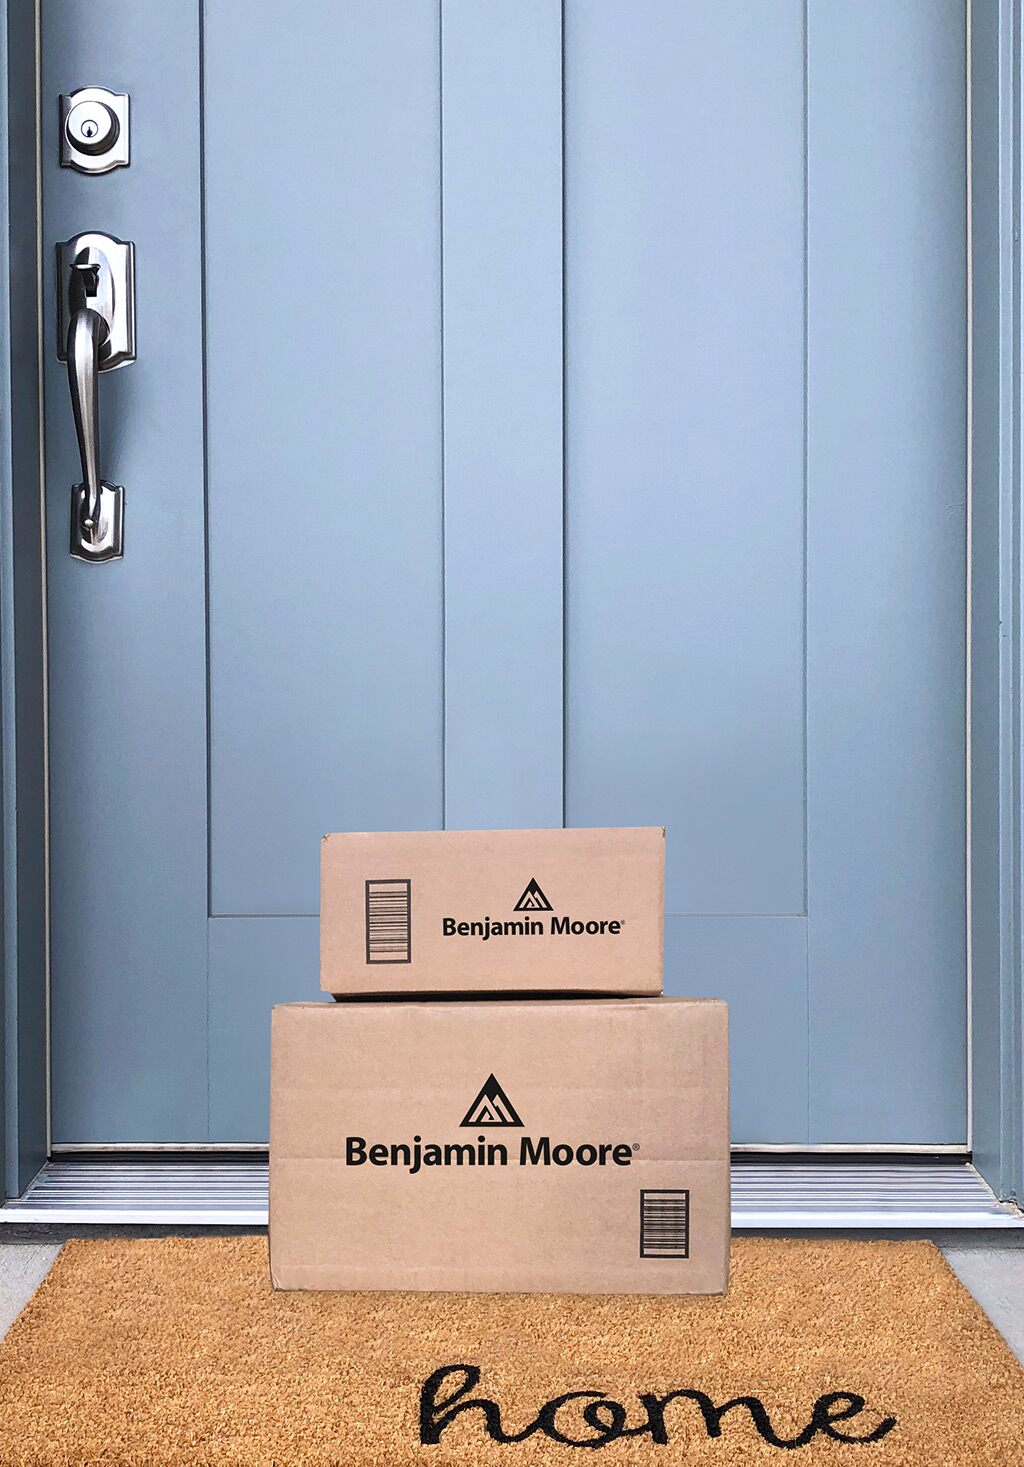 A package containing paint and supplies from Benjamin Moore sits in front of a door painted in Harlequin Blue 830.